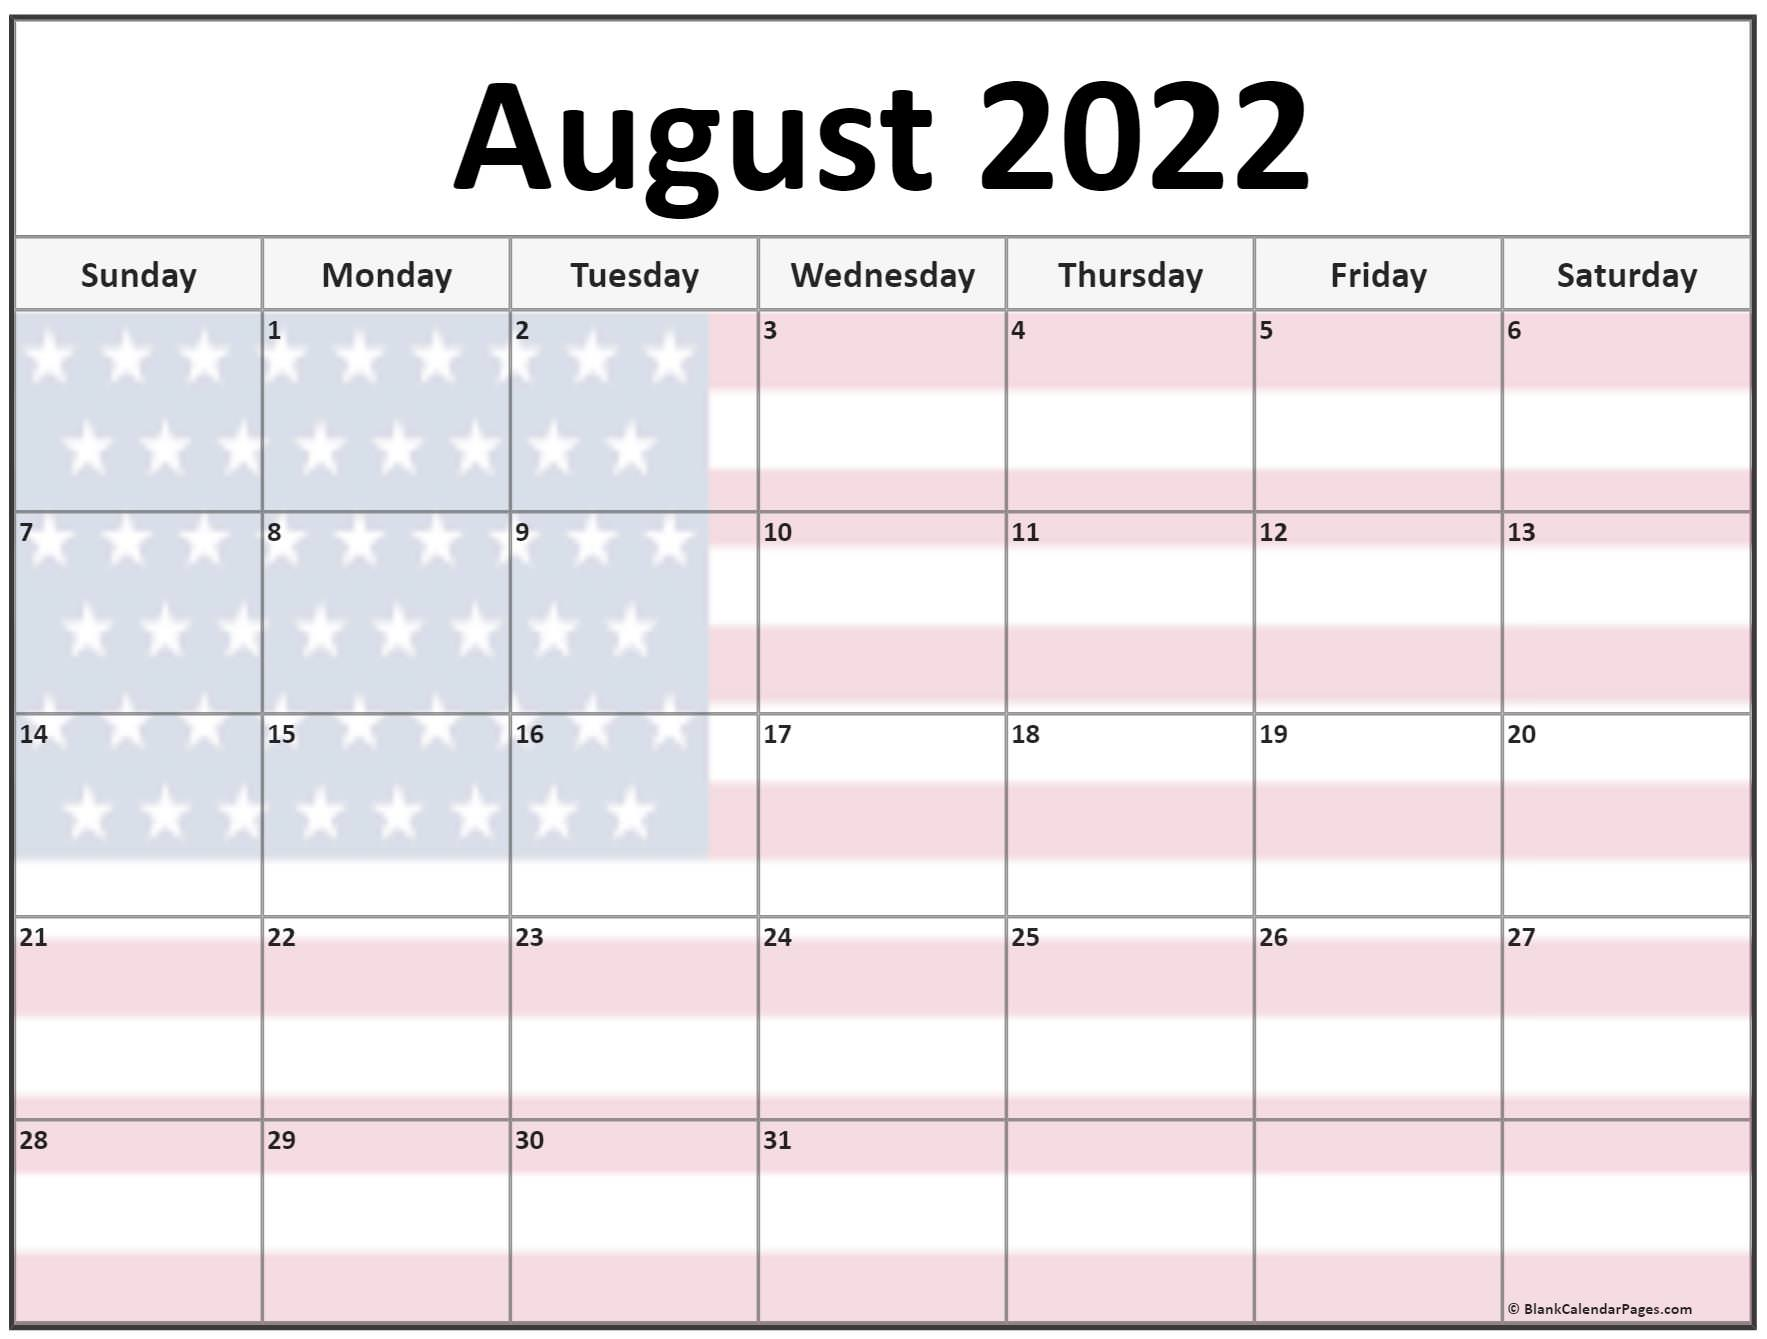 Aug 2022 Calendar.Collection Of August 2022 Photo Calendars With Image Filters